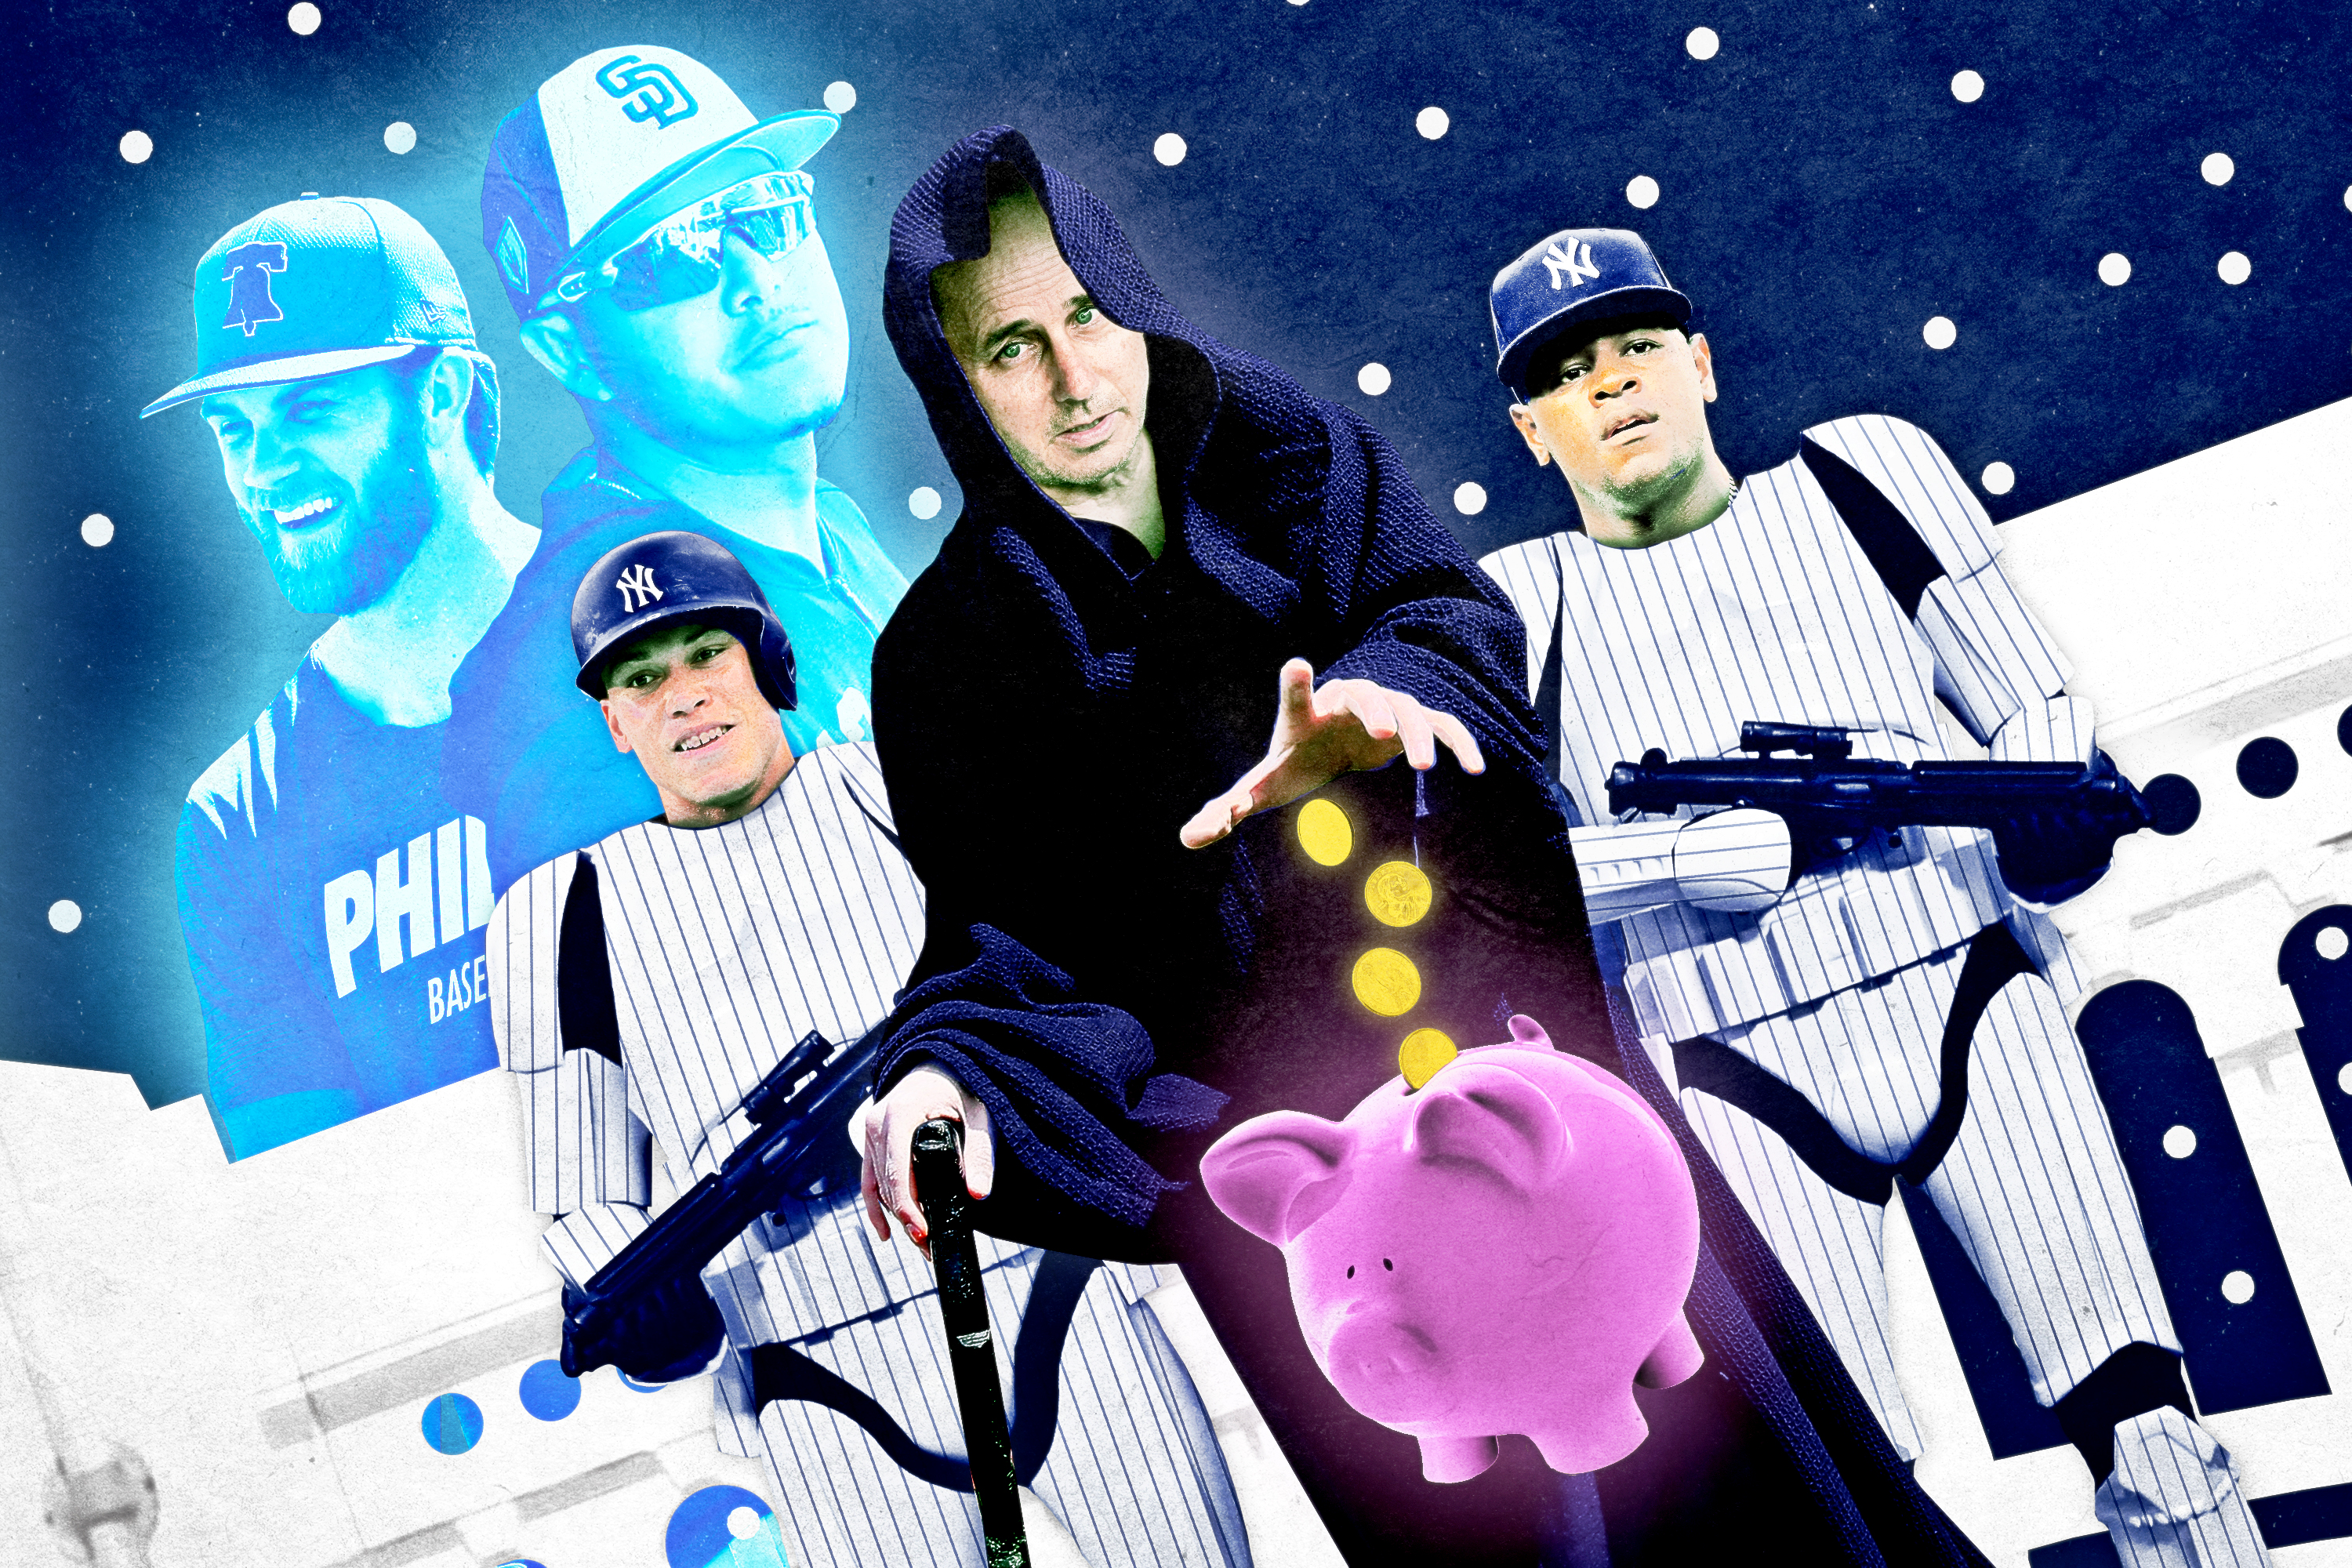 50cc9e8bca2 The Yankees Still Think They re a Death Star. But They re Not Acting Like  One.